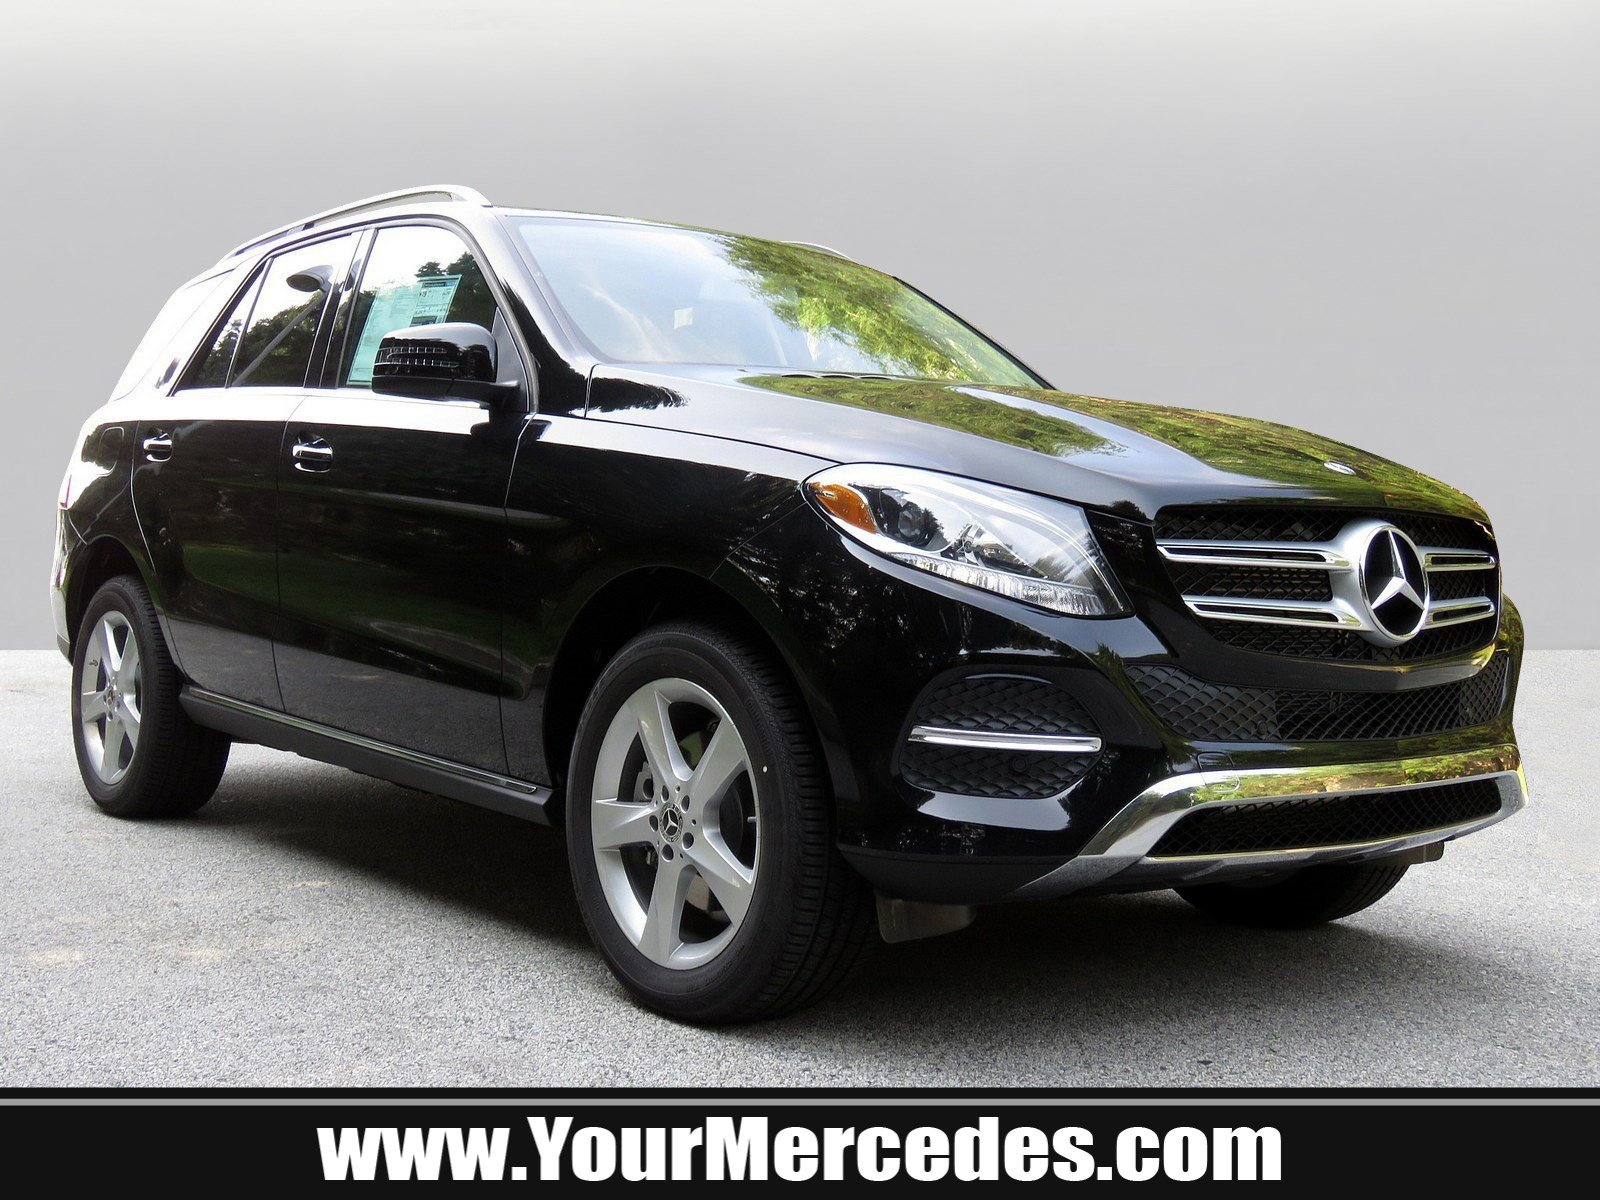 New 2018 Mercedes Benz GLE GLE 350 SUV in West Chester JB